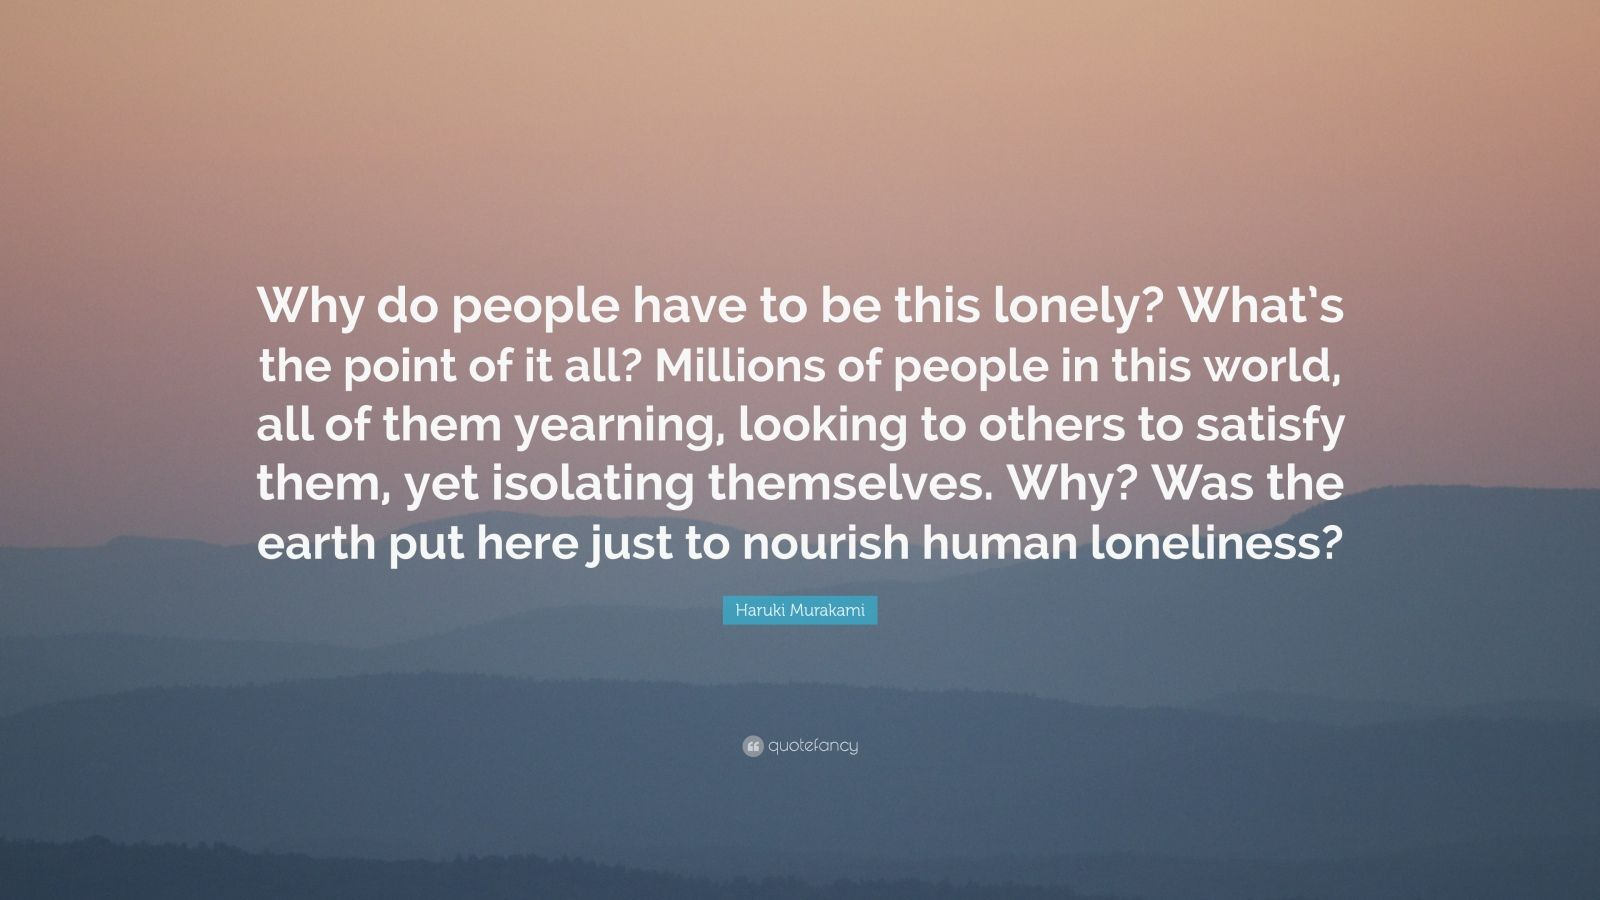 "Haruki Murakami Quote: ""Why do people have to be this lonely? What's the point of it all? Millions of people in this world, all of them yearning, looking to others to satisfy them, yet isolating themselves. Why? Was the earth put here just to nourish human loneliness?"""